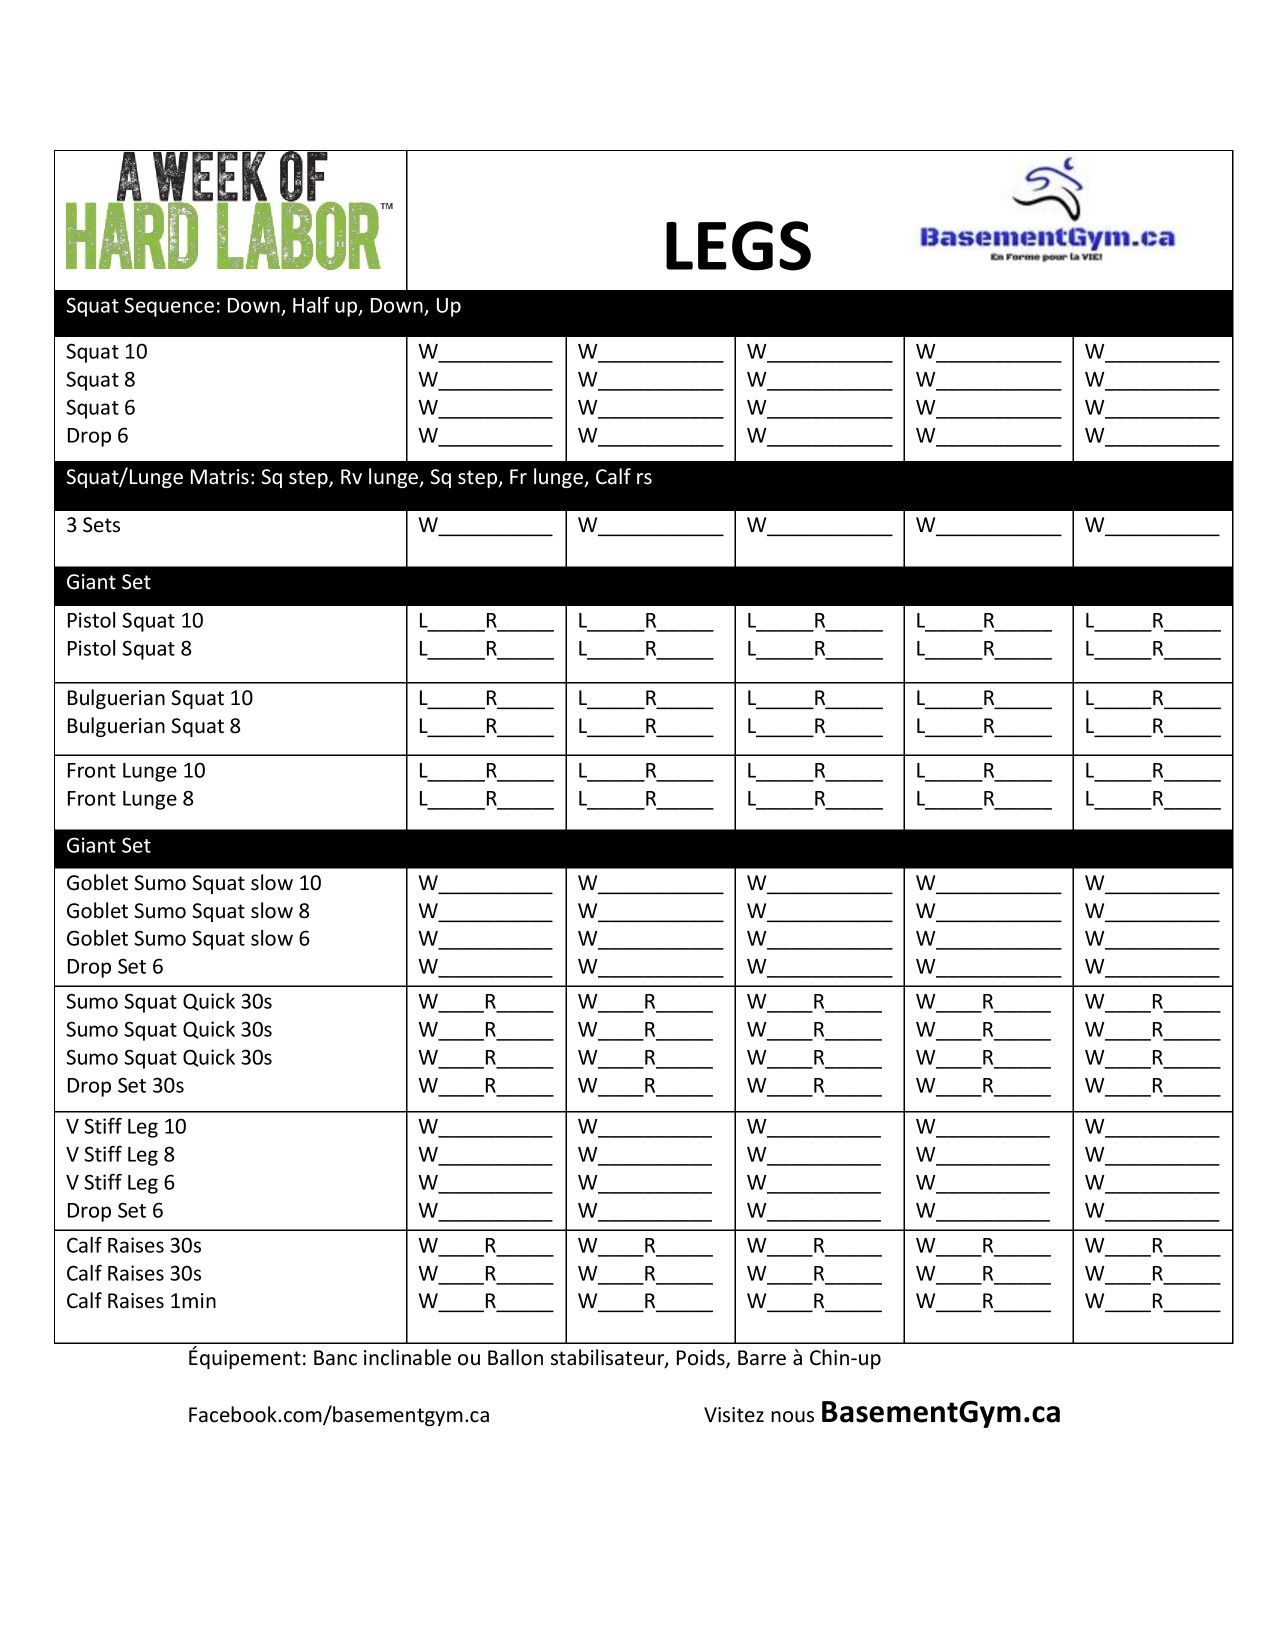 A Week Of Hard Labor Day 2 Legs